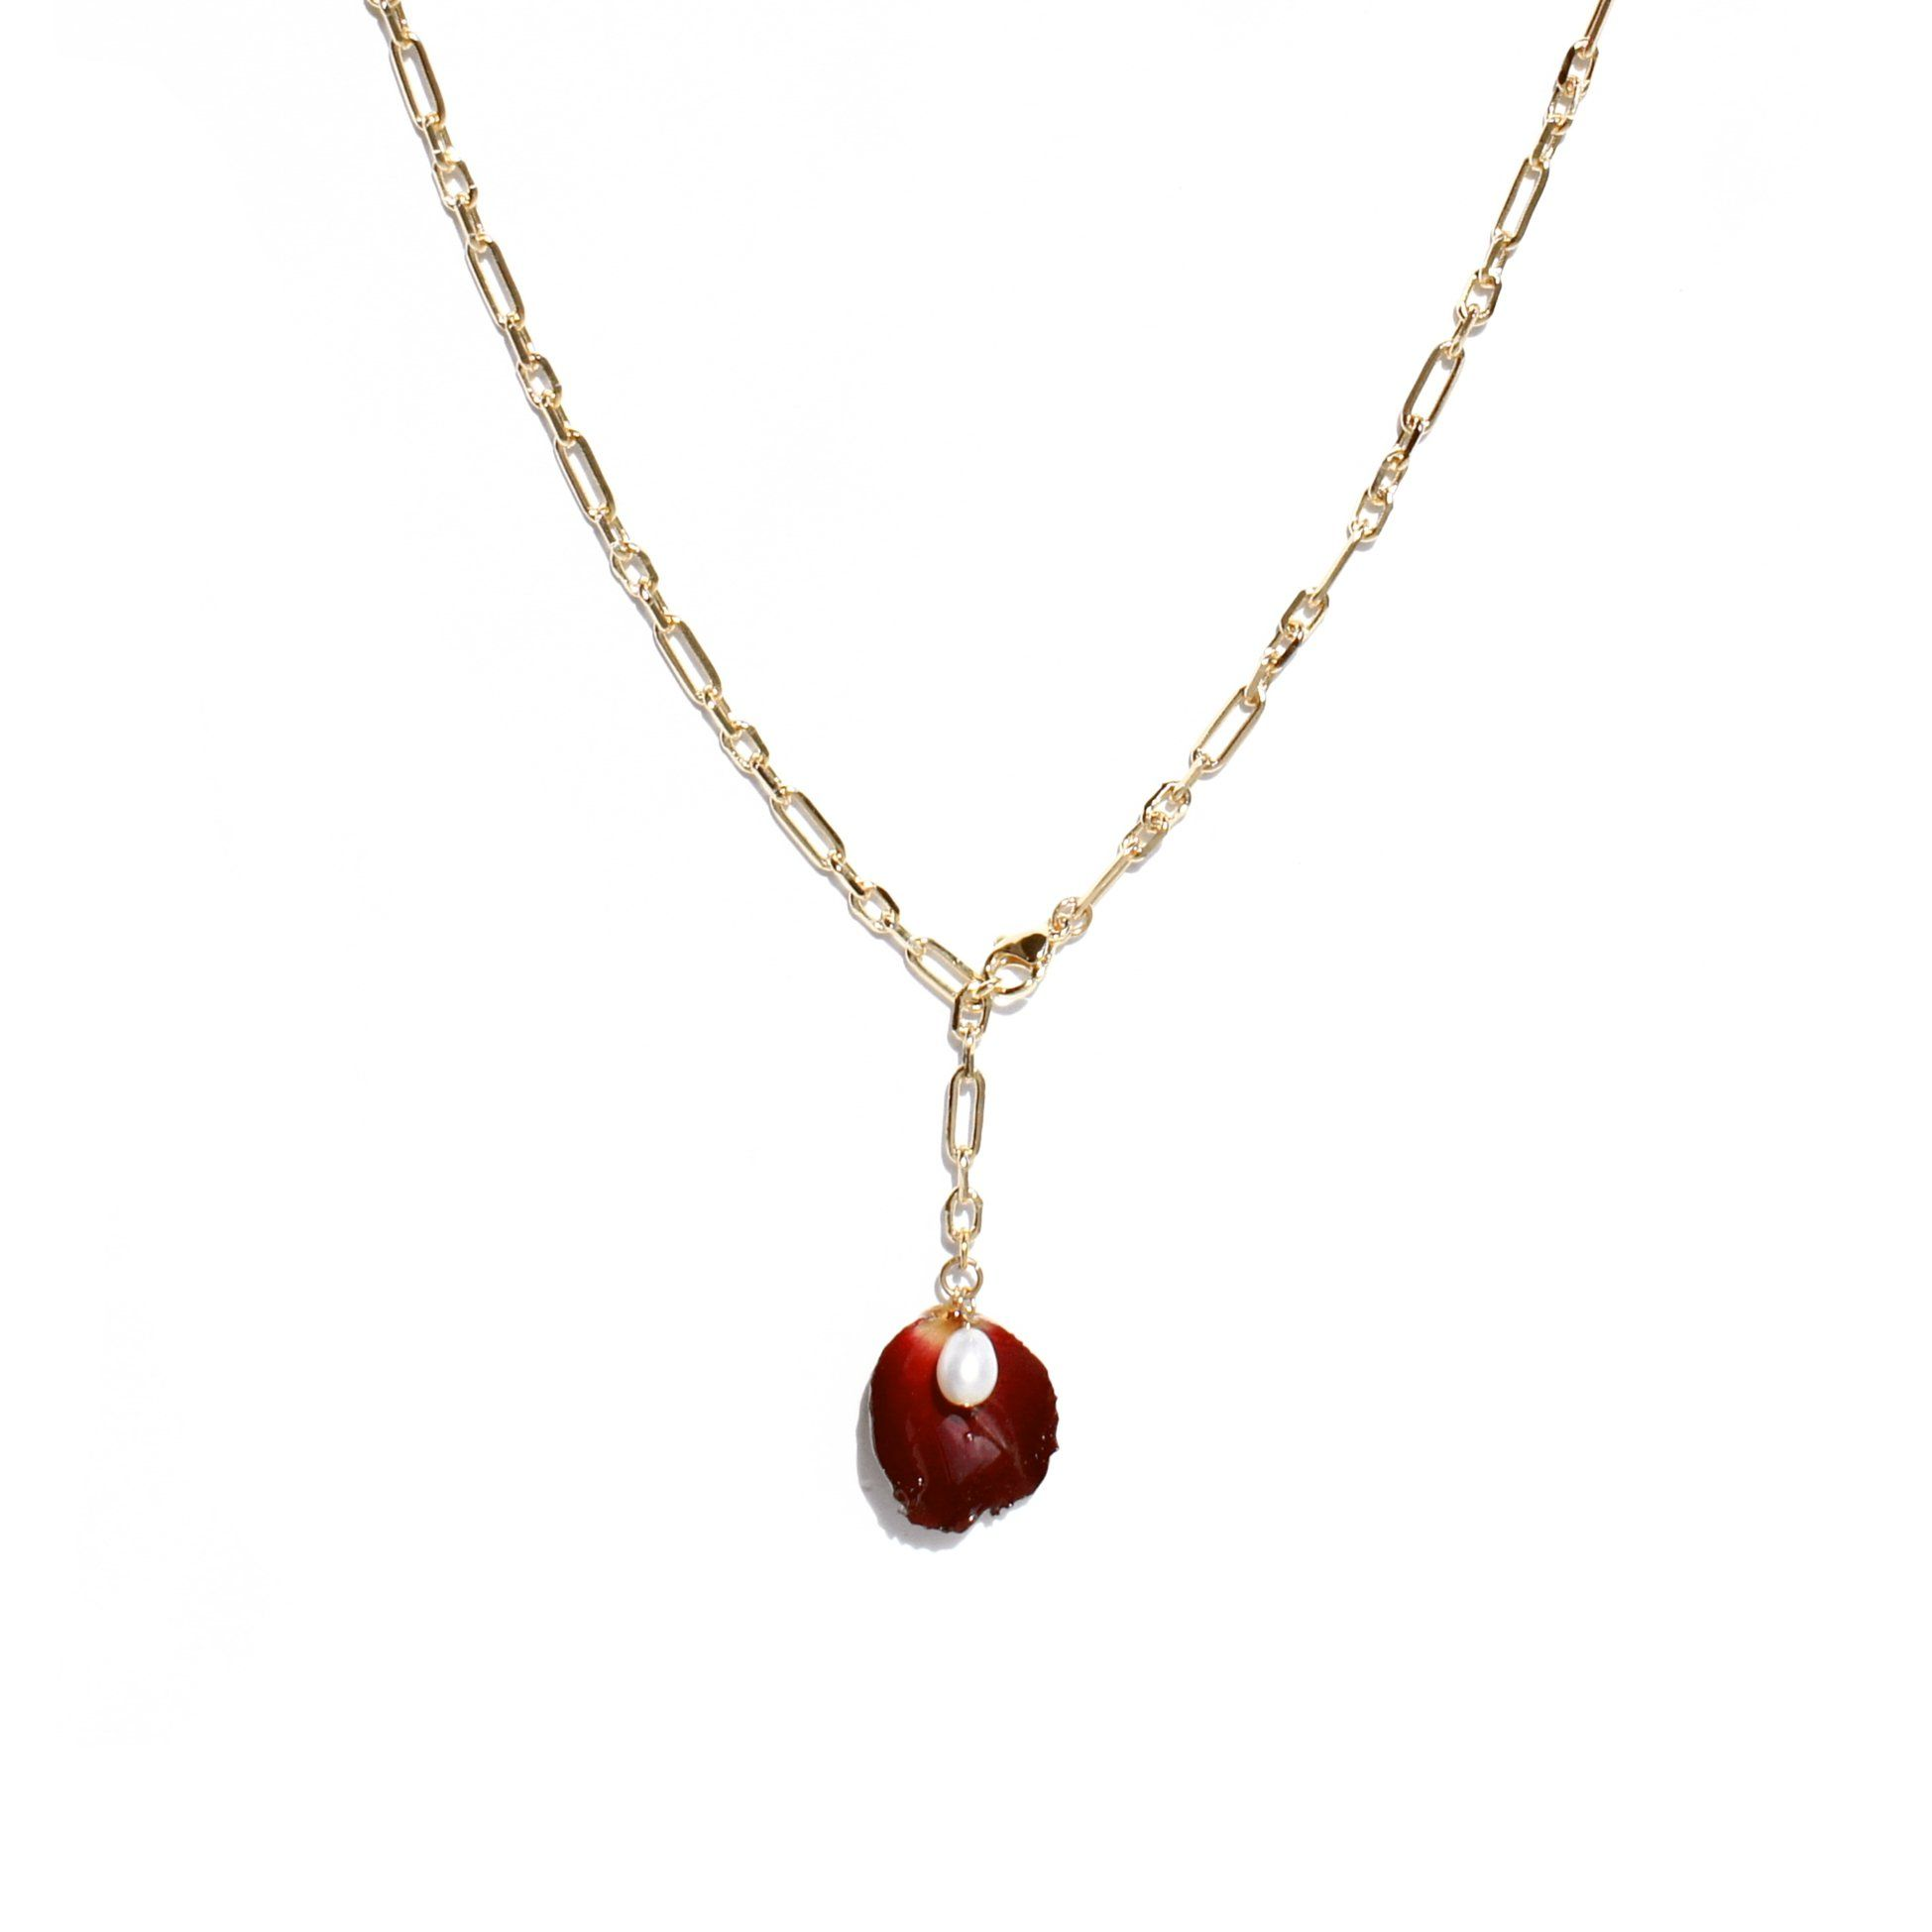 A romantic yet characterful necklace featuring a preserved rose petal in intense carmine with a freshwater pearl in the center. The length is adjustable thanks to the front-closure clasp. Explore our full collection of Real Flower Jewellery Handcrafted Front closure, length adjustable Measurement: 60cm total length, adjustable Materials: rose petal, resin, freshwater pearl, 18k gold plated brass. One-of-a-kind: This piece of jewellery features real flowers, which are naturally irregular. This co